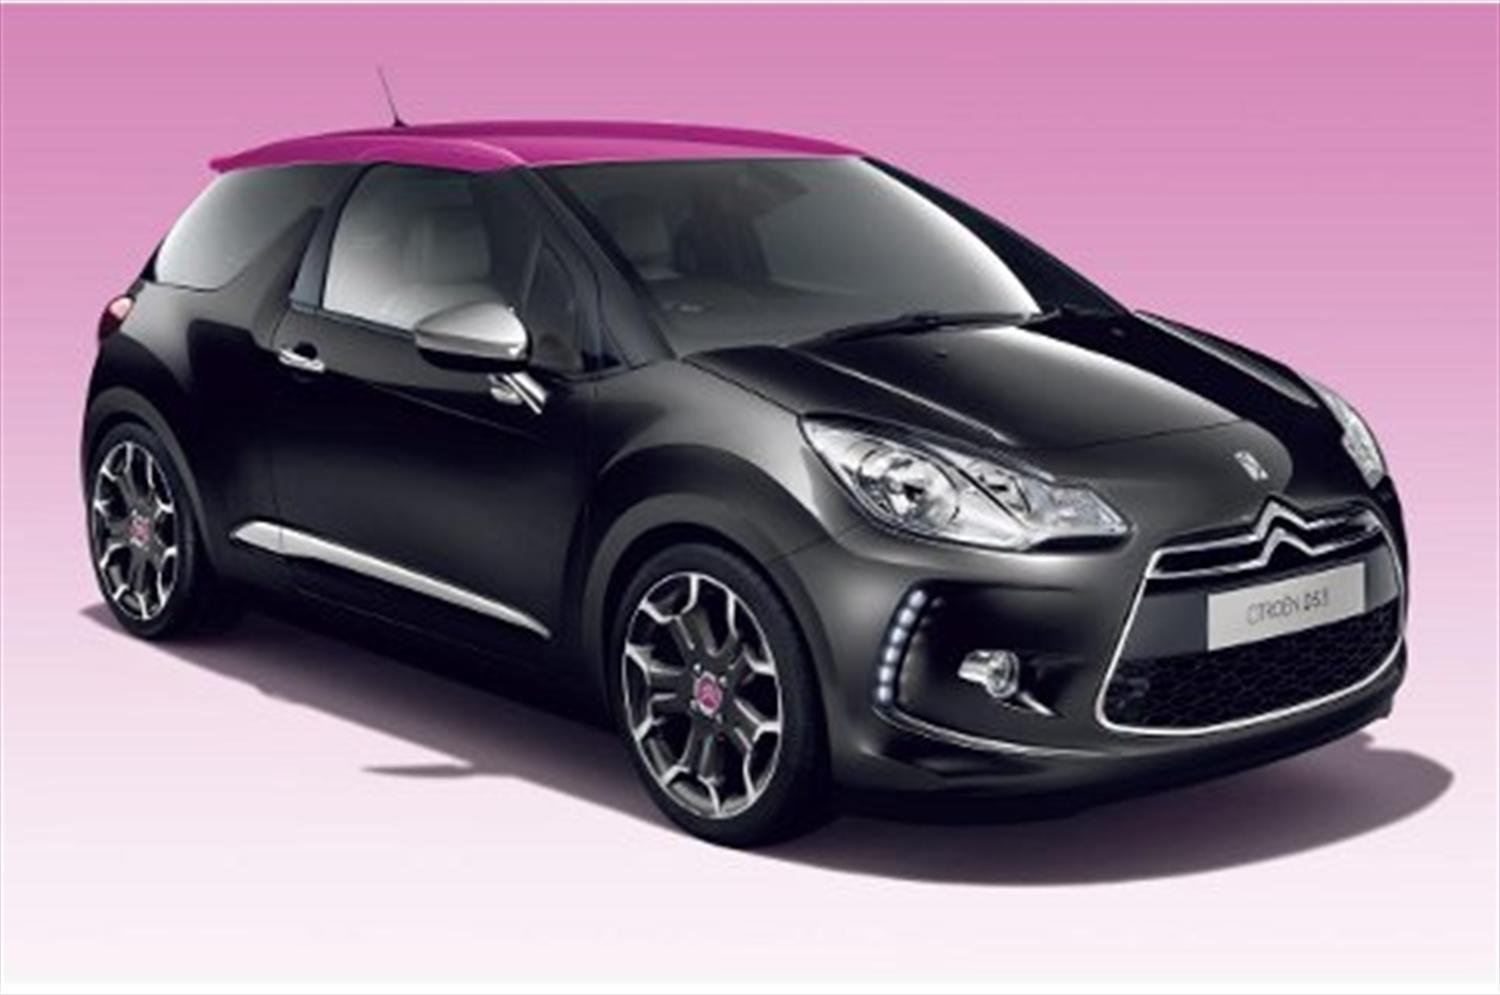 New 'pink' Citroen DS3 revealed